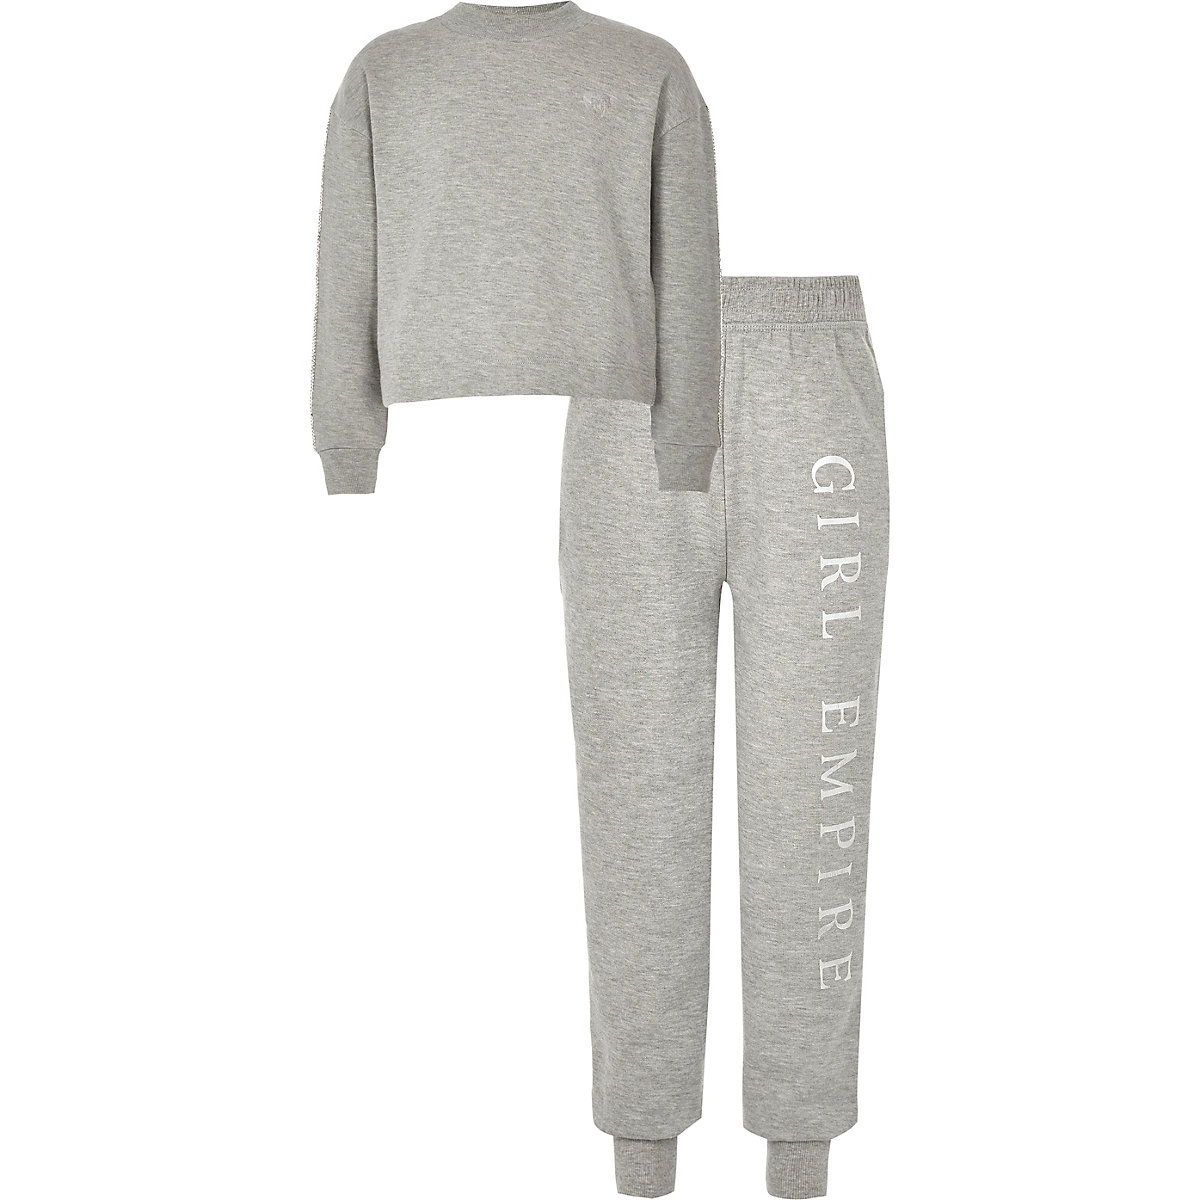 Girls grey rhinestone trim sweat outfit